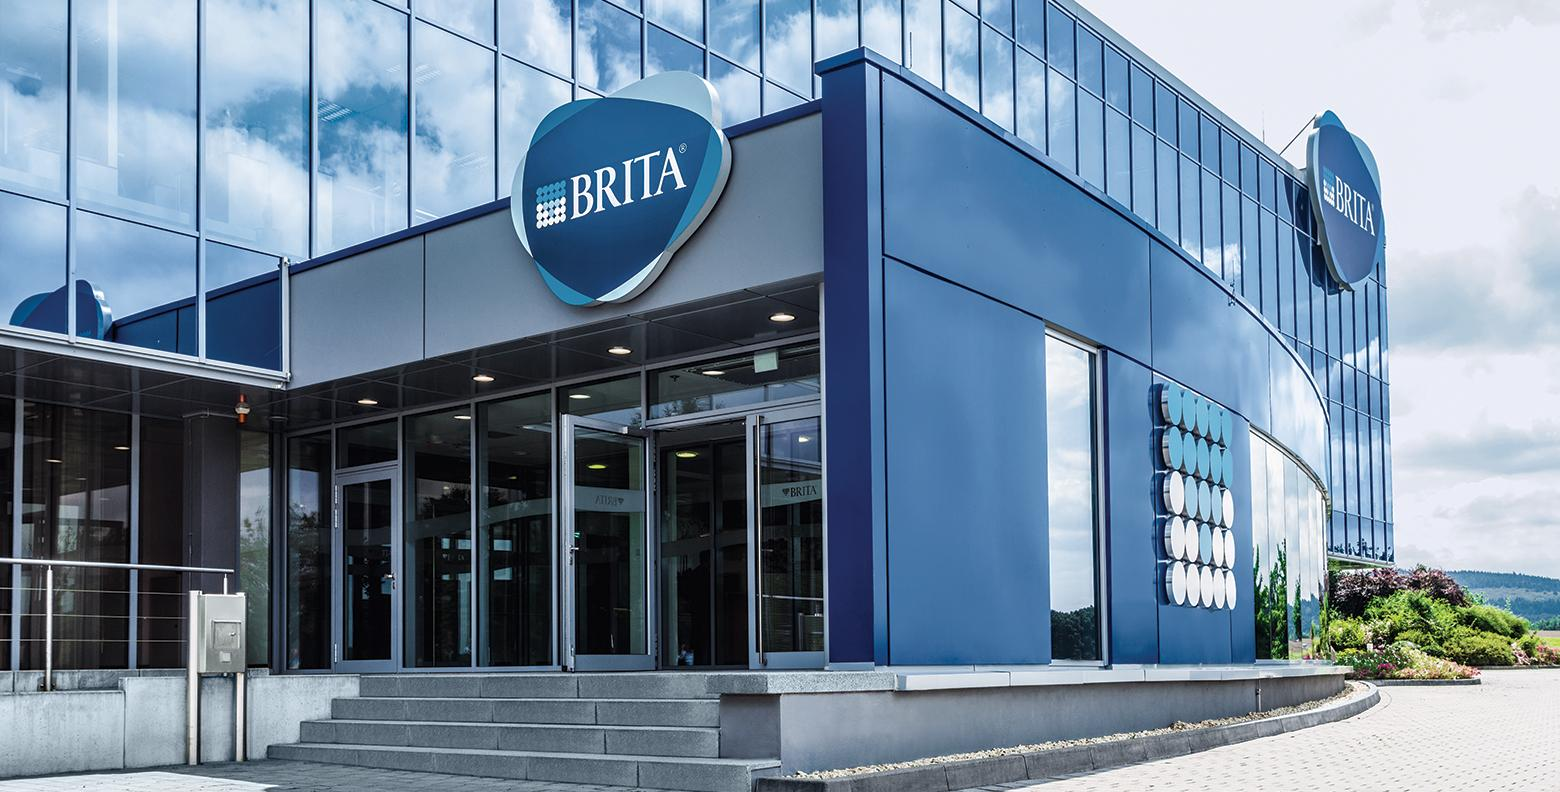 BRITA Headquarter